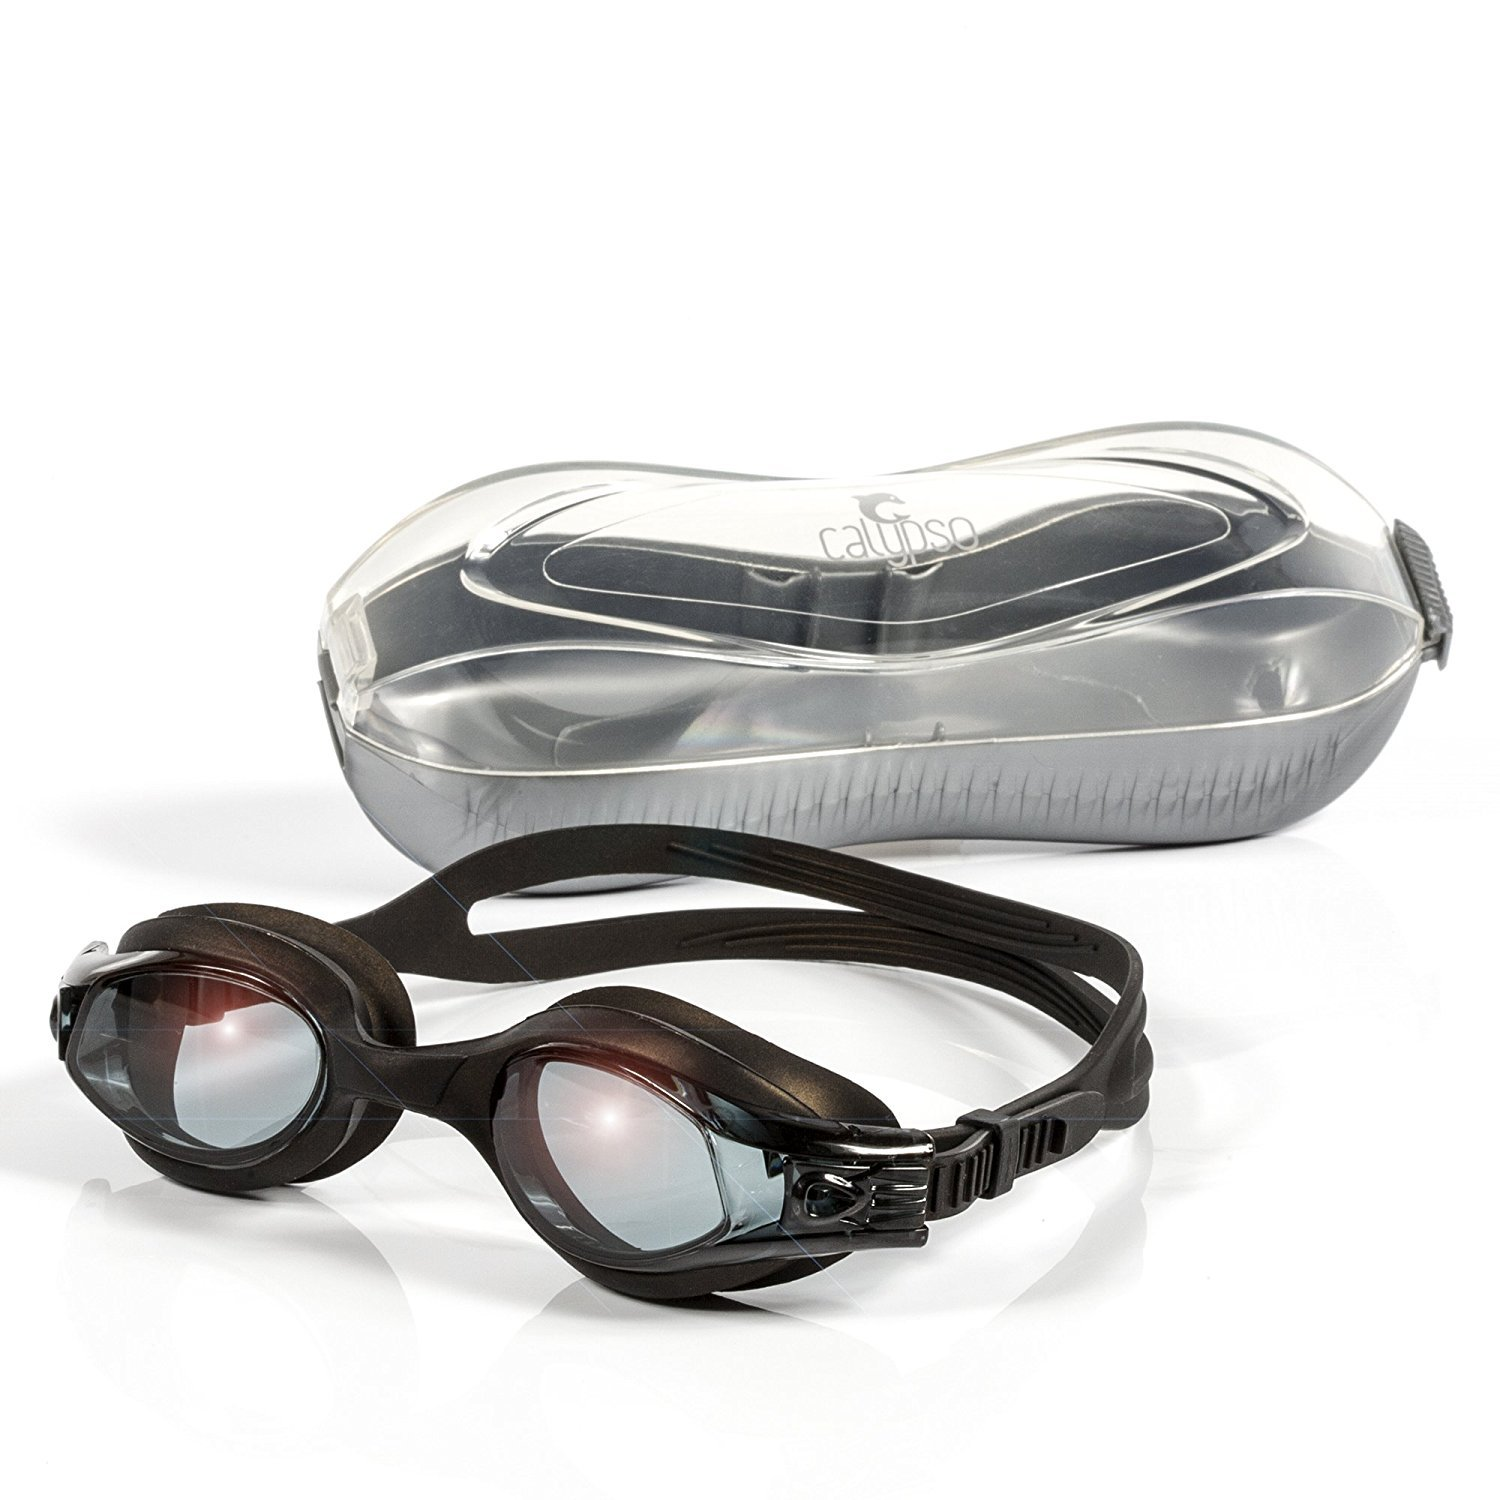 Swimming goggles for adults kids - swim goggles for men and women -anti fog tinted leakproof for triathlon racing and pool and underwater sports - Calypso